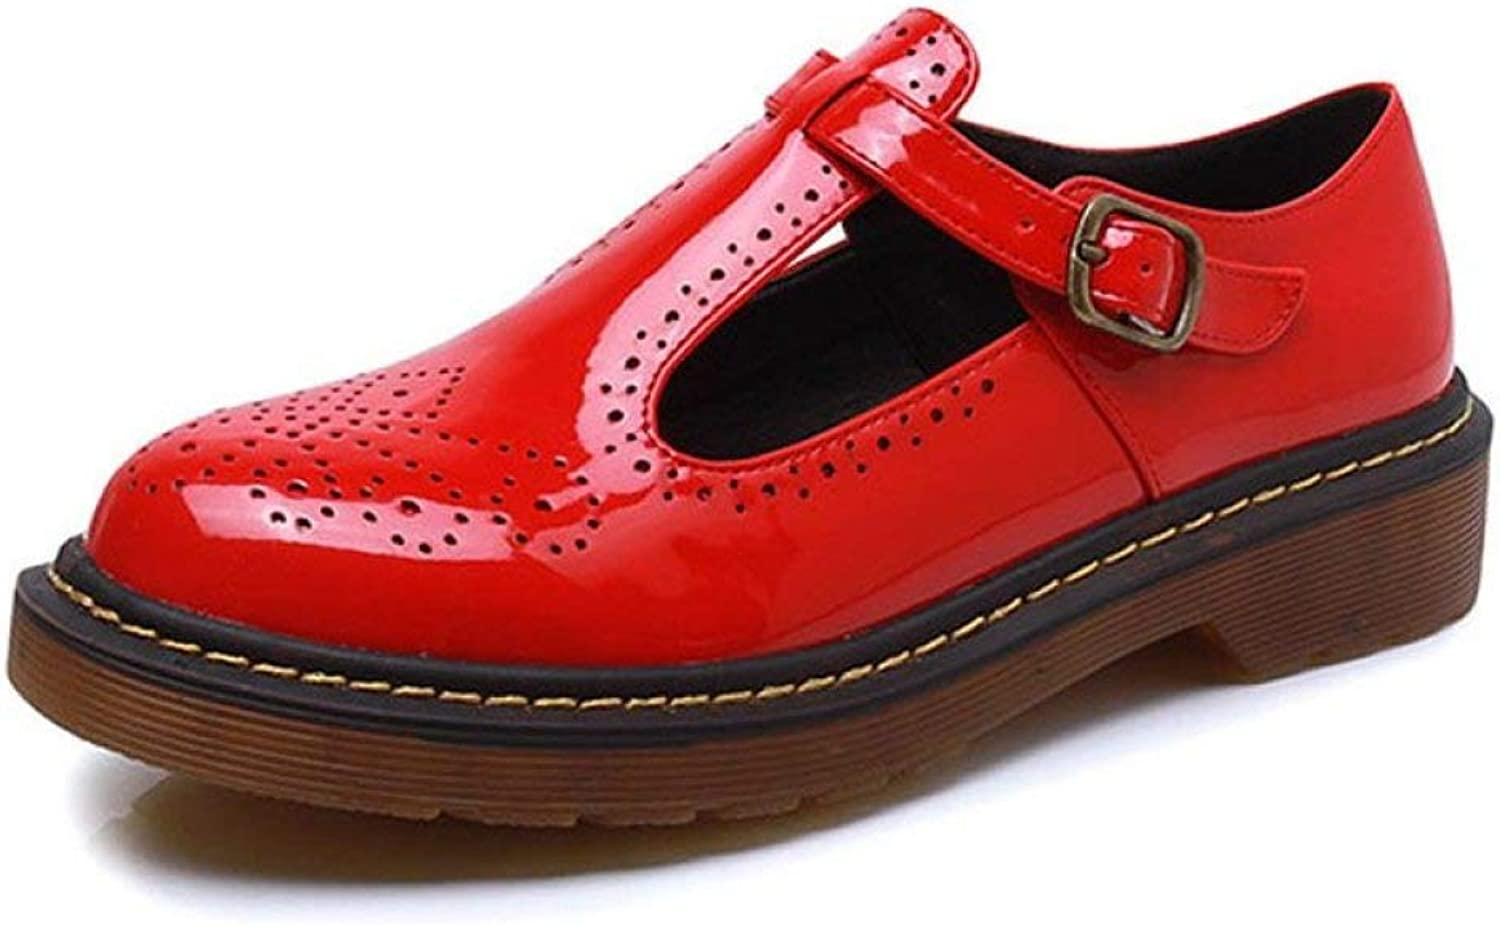 DETAIWIN Women Patent Leather Brogues Oxfords Slip On Buckle Strap Tassels Round Toe Lady Casual Flats Loafers shoes